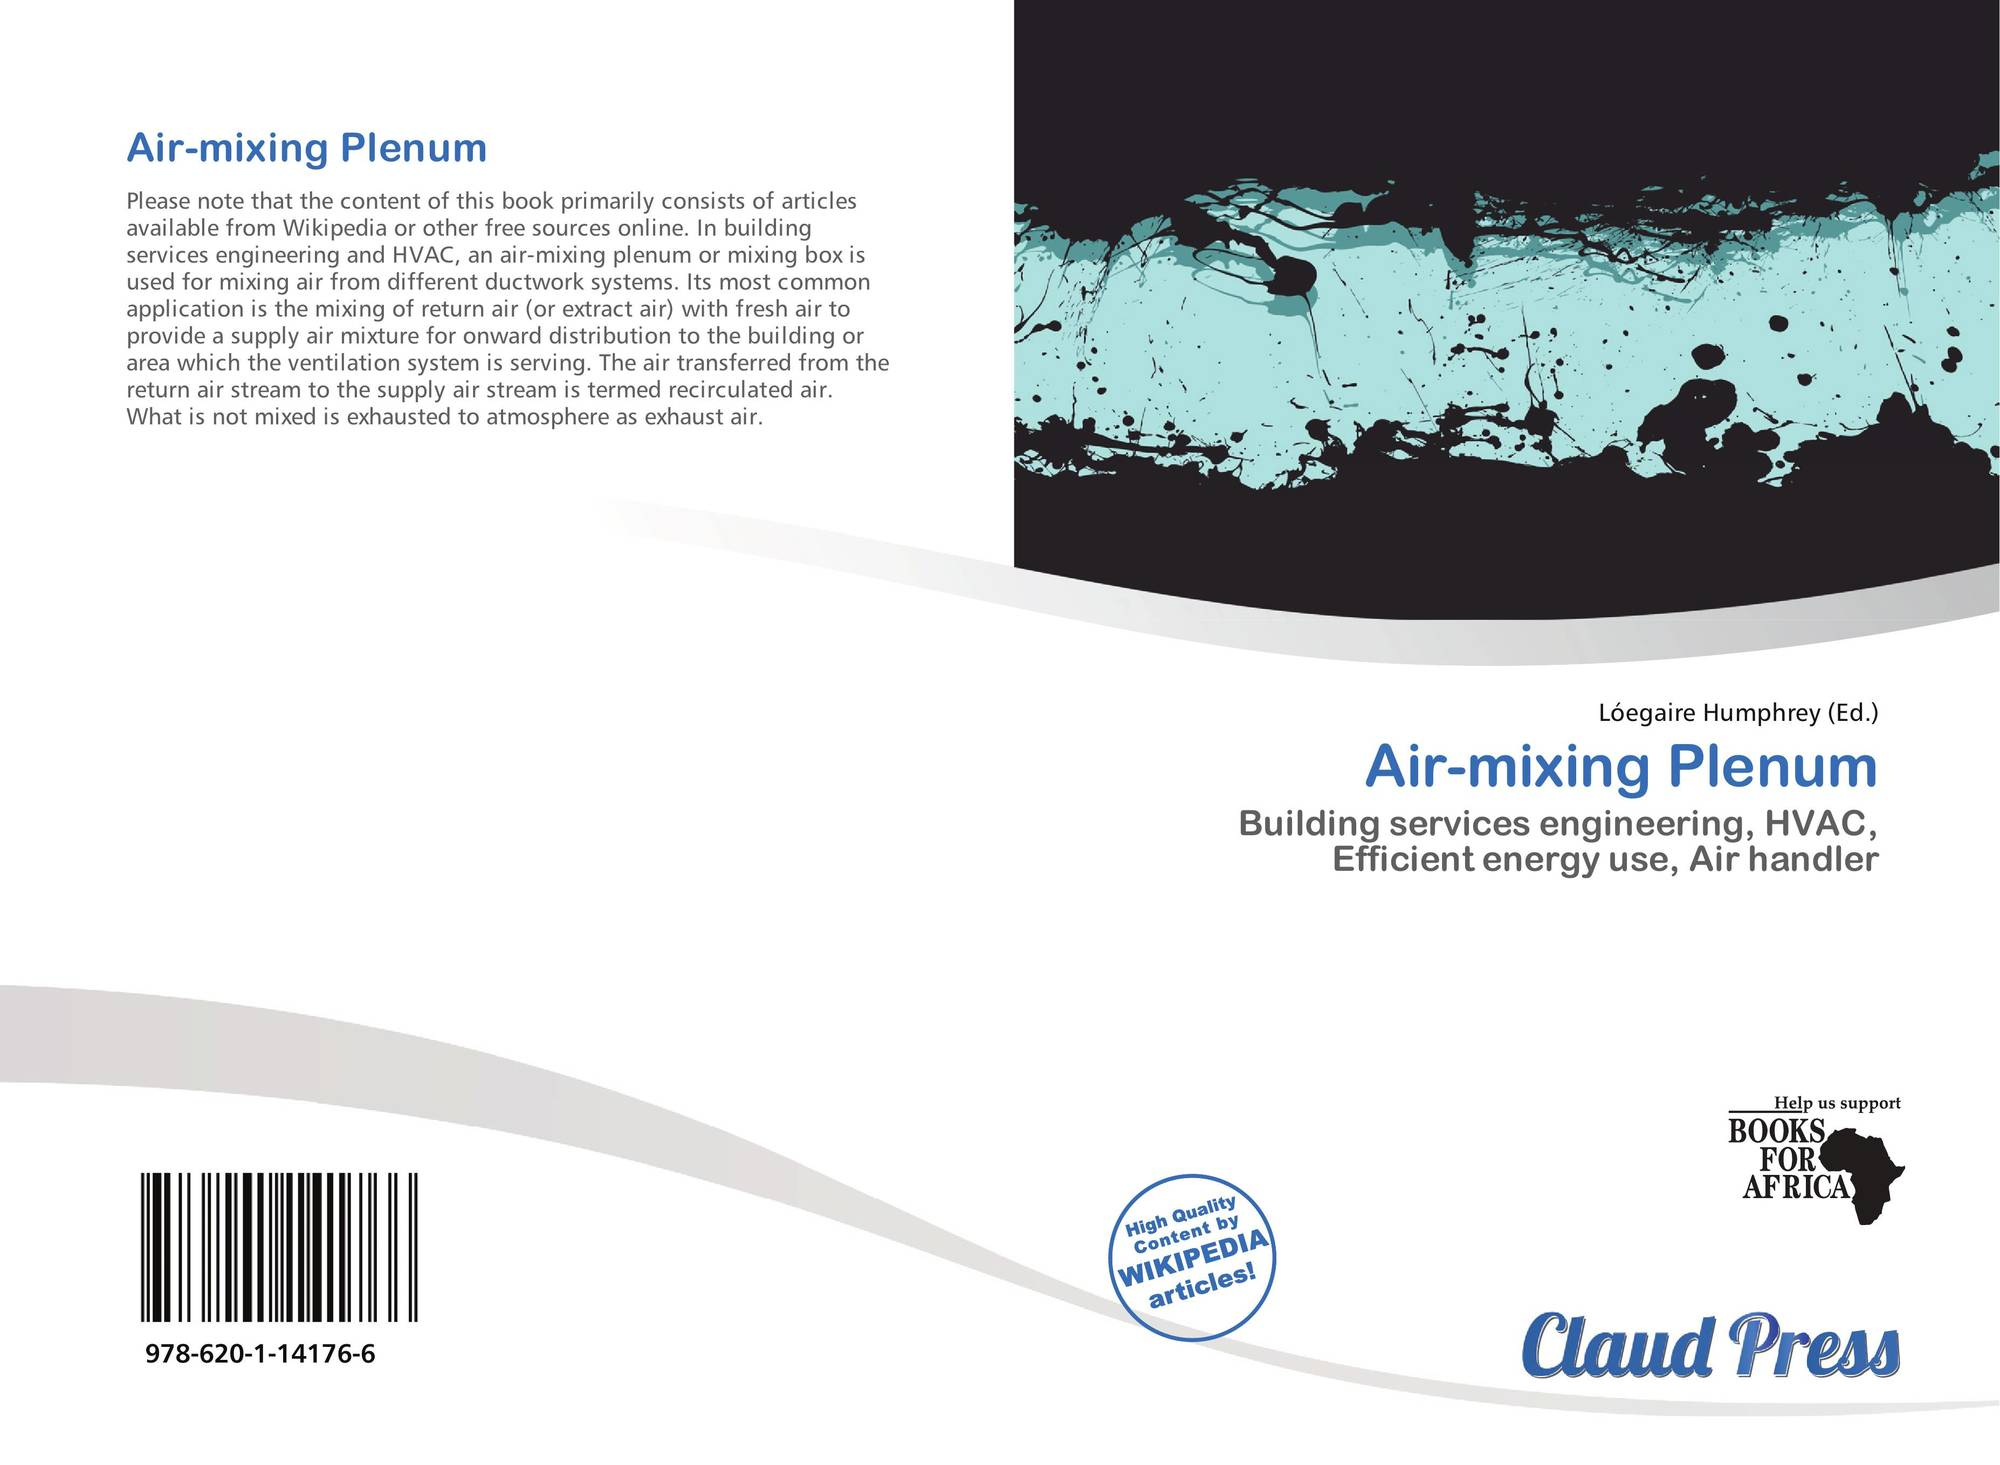 Air-mixing Plenum, 978-620-1-14176-6, 6201141766 ,9786201141766